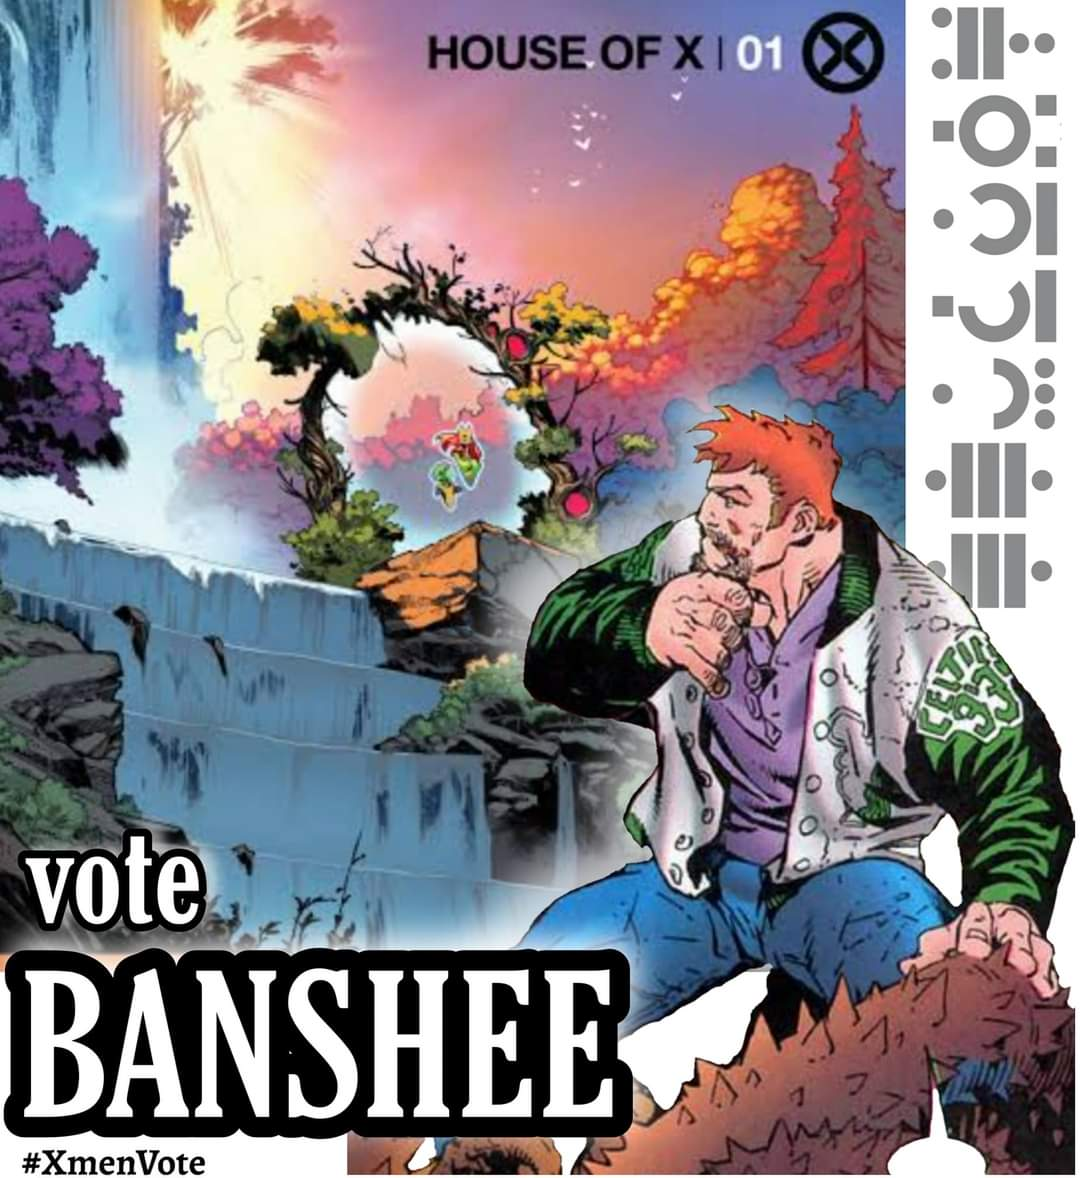 @lindseewa Yeah! The new team could use some irish luck. 🍀#XmenVote #VoteBanshee